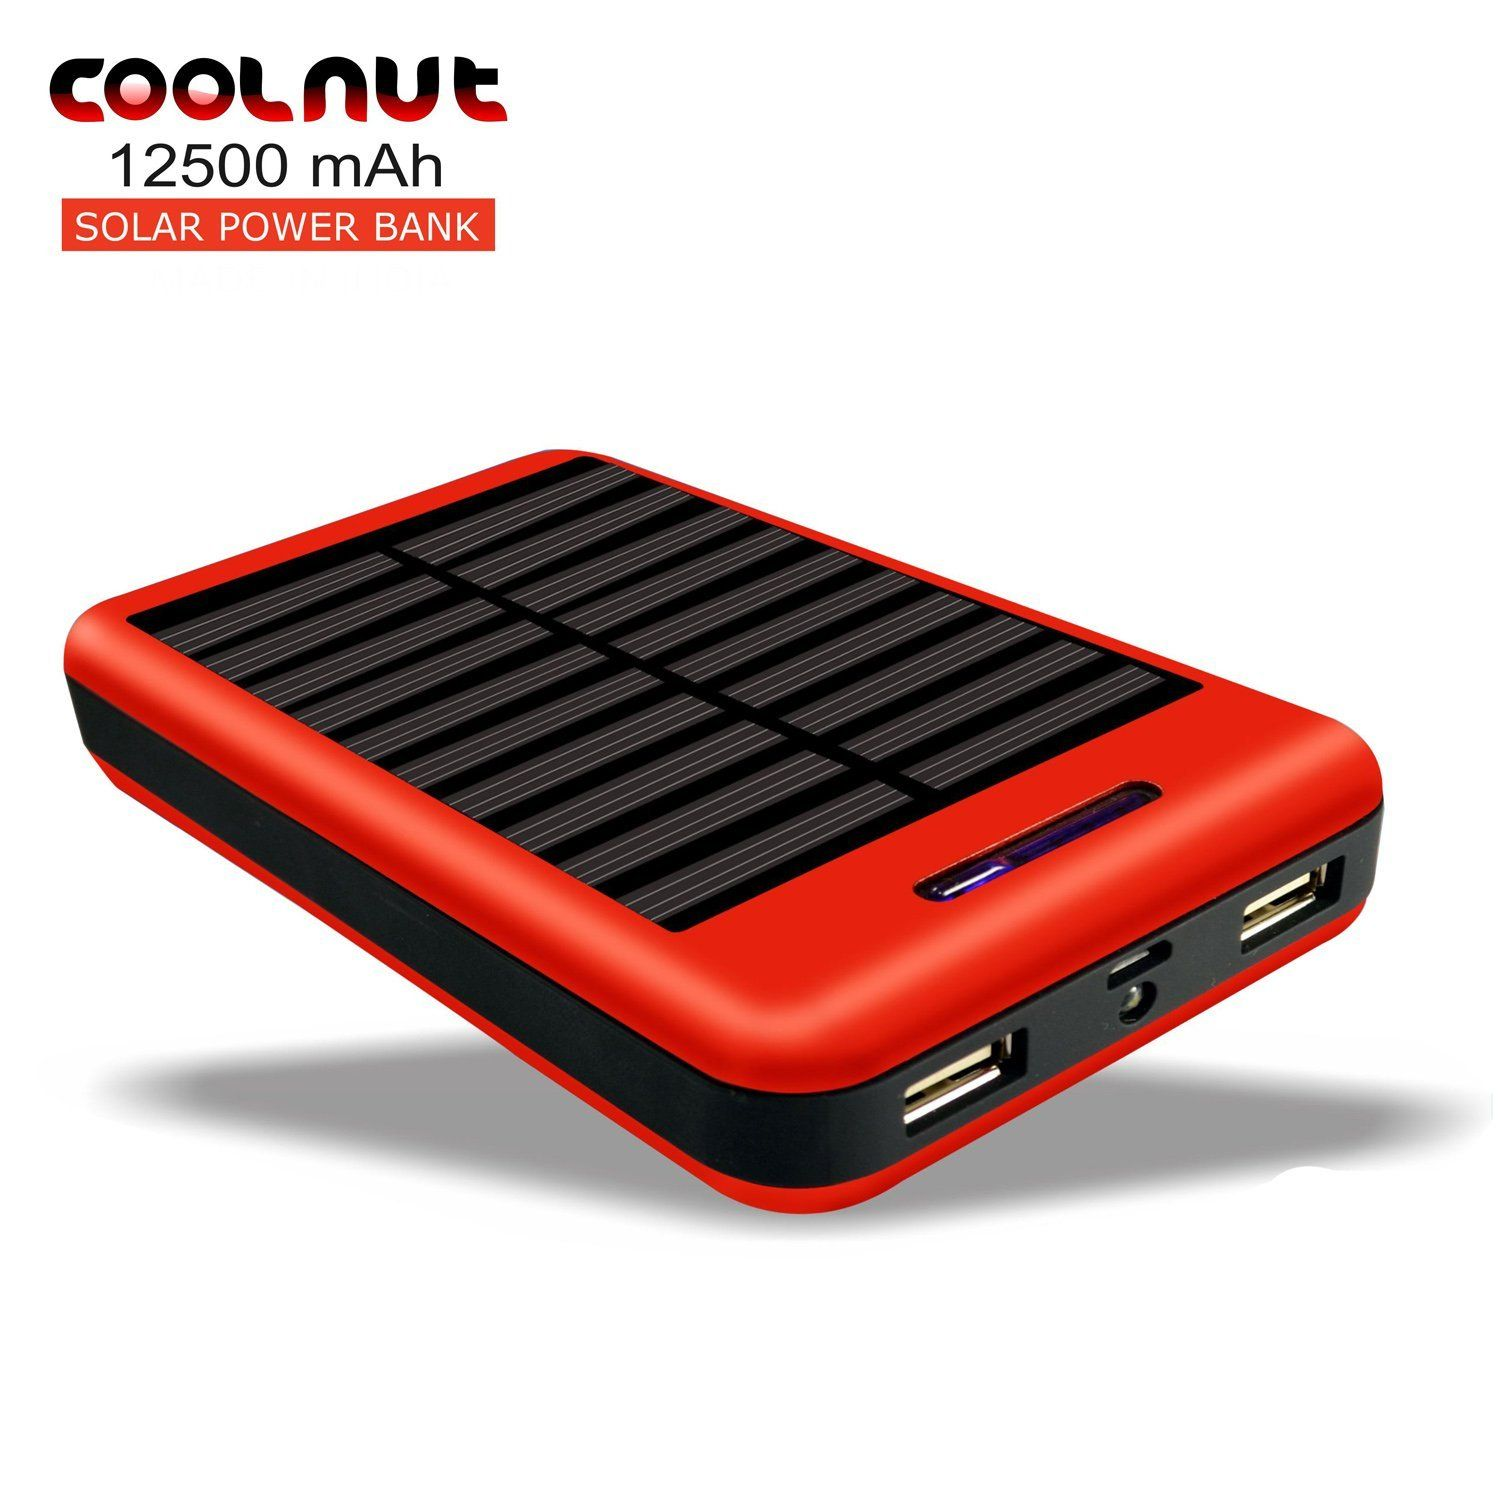 Get Up To 75 Off Great Saving Every Day On Coolnut Power Banks Http Www Amazon In Dp B018nvffr0 Bestpowerb Solar Power Bank Powerbank Solar Panel Kits